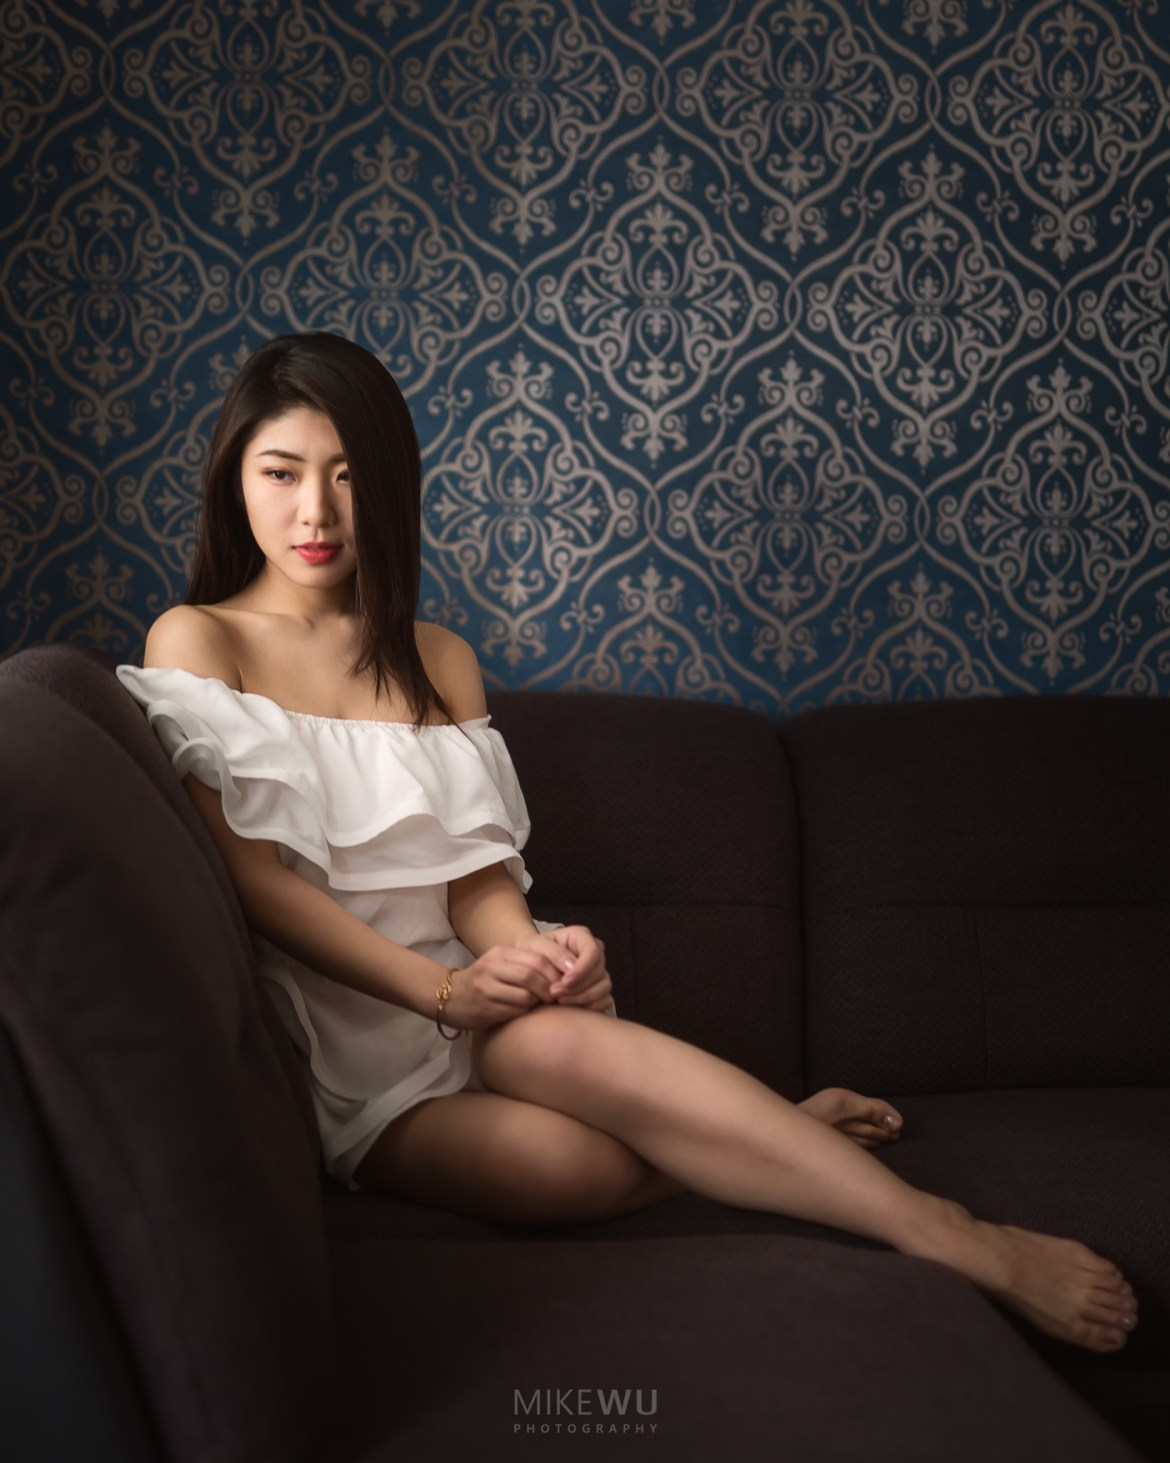 Vancouver Photographer Mike Wu Couch Seated Portrait couch wallpaper dress lady lifestyle editorial canada